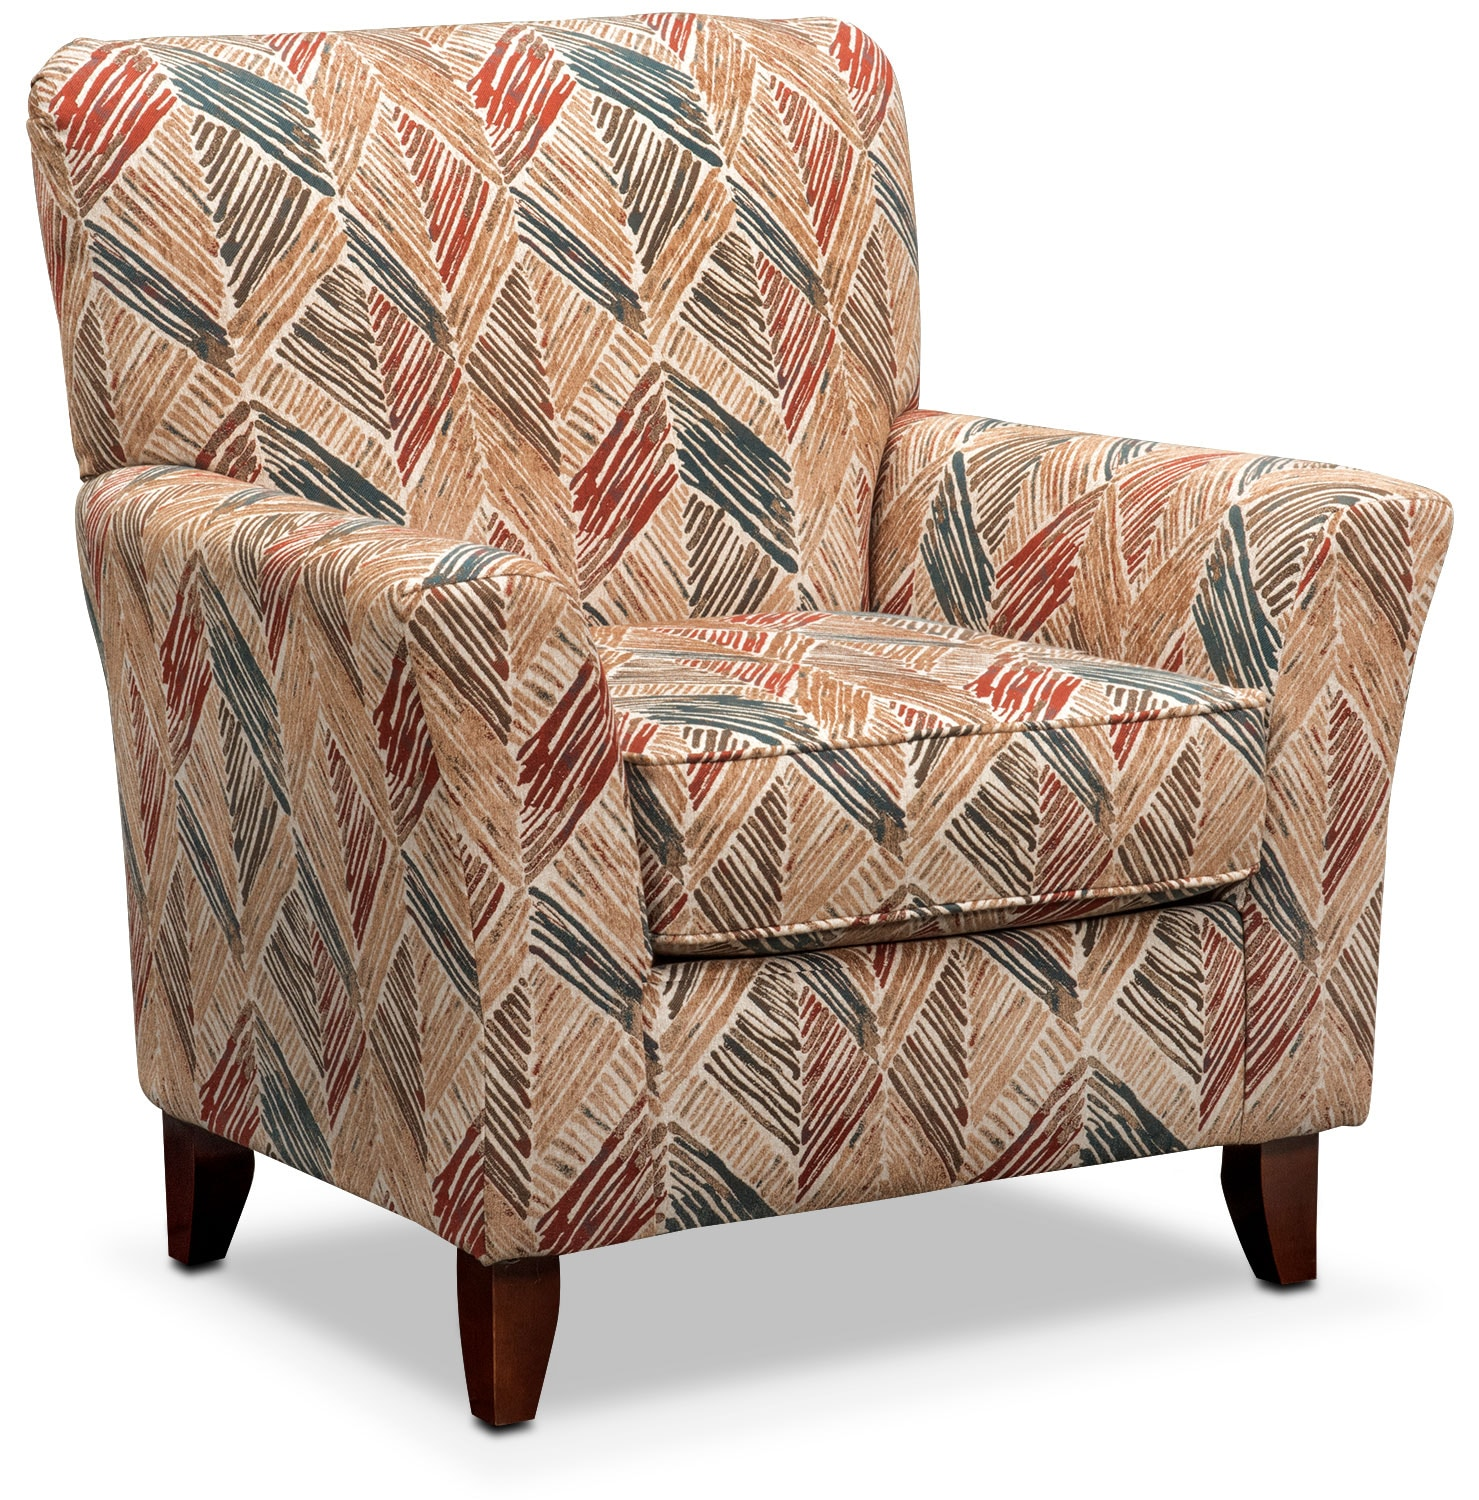 Chairs Amp Chaises Living Room Seating American